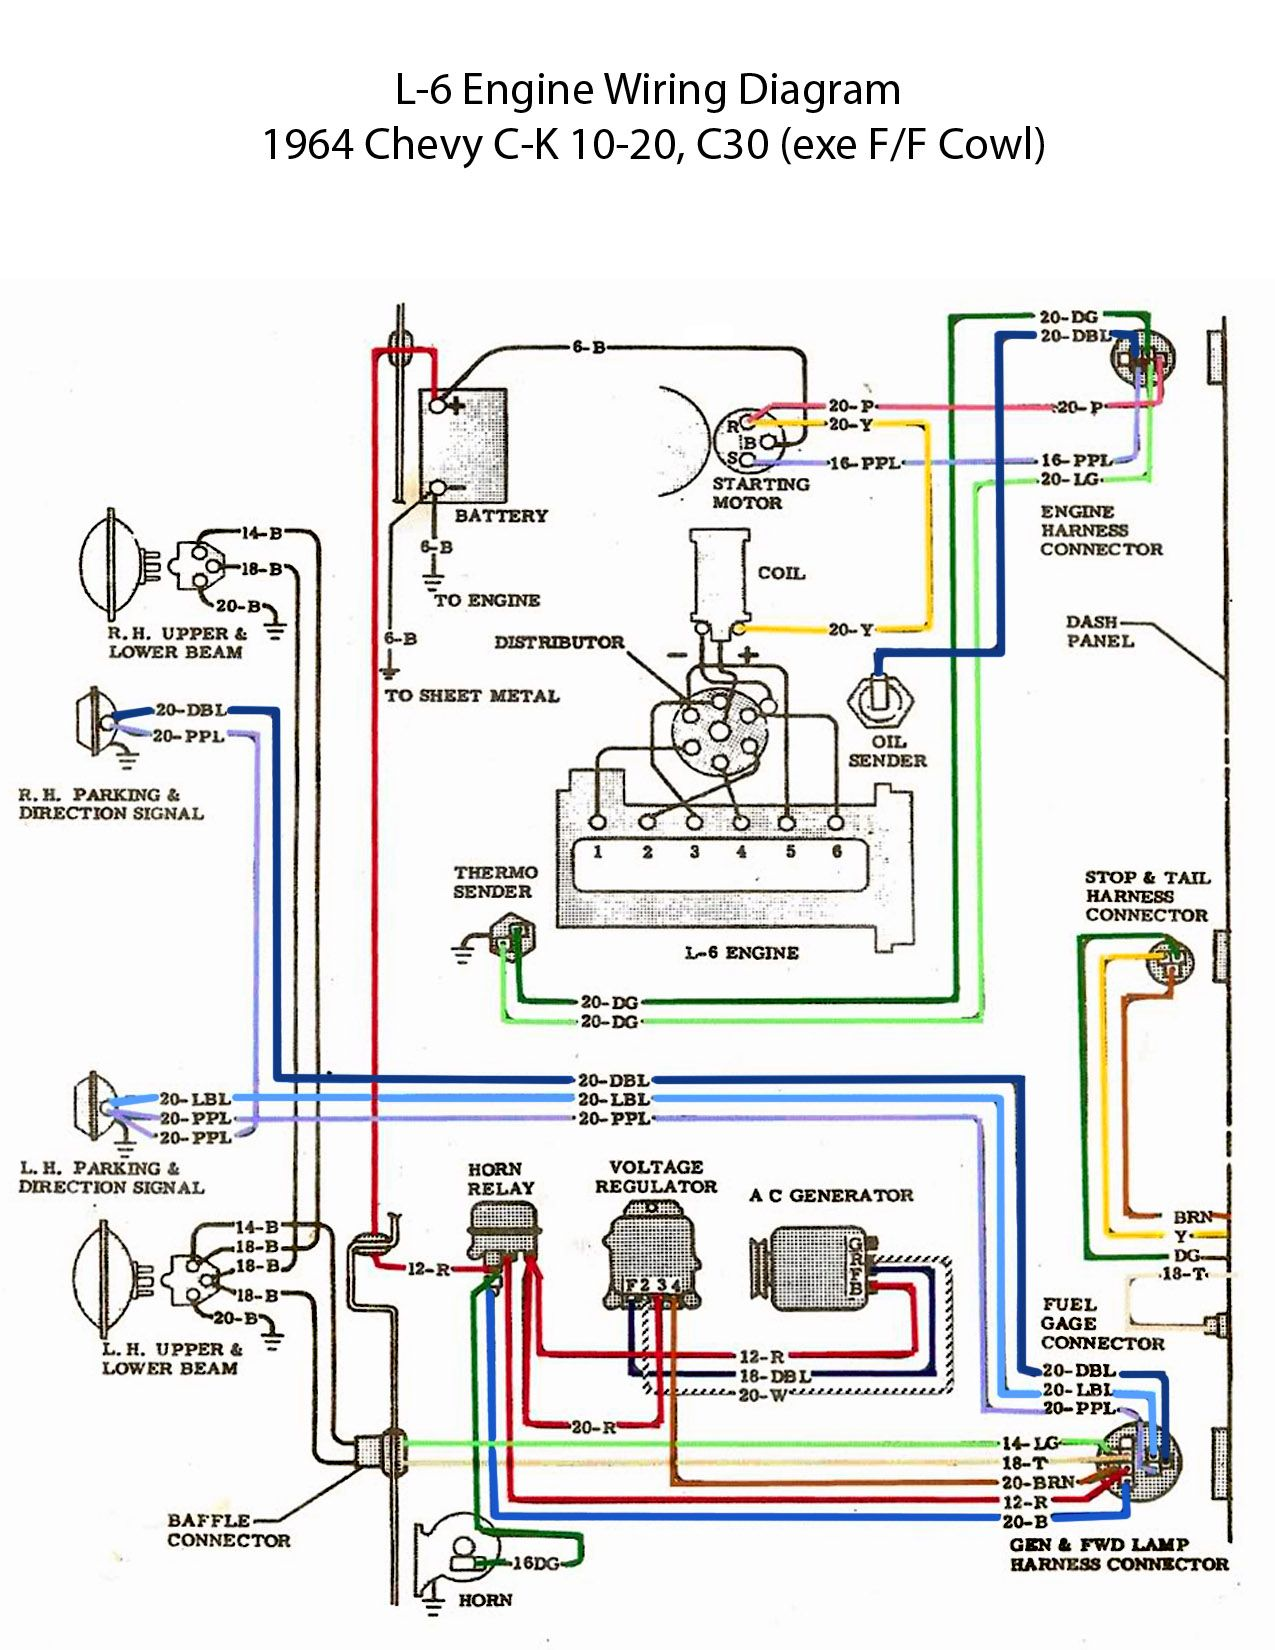 hight resolution of electric l 6 engine wiring diagram 60s chevy c10 wiring 1954 chevy truck horn diagram